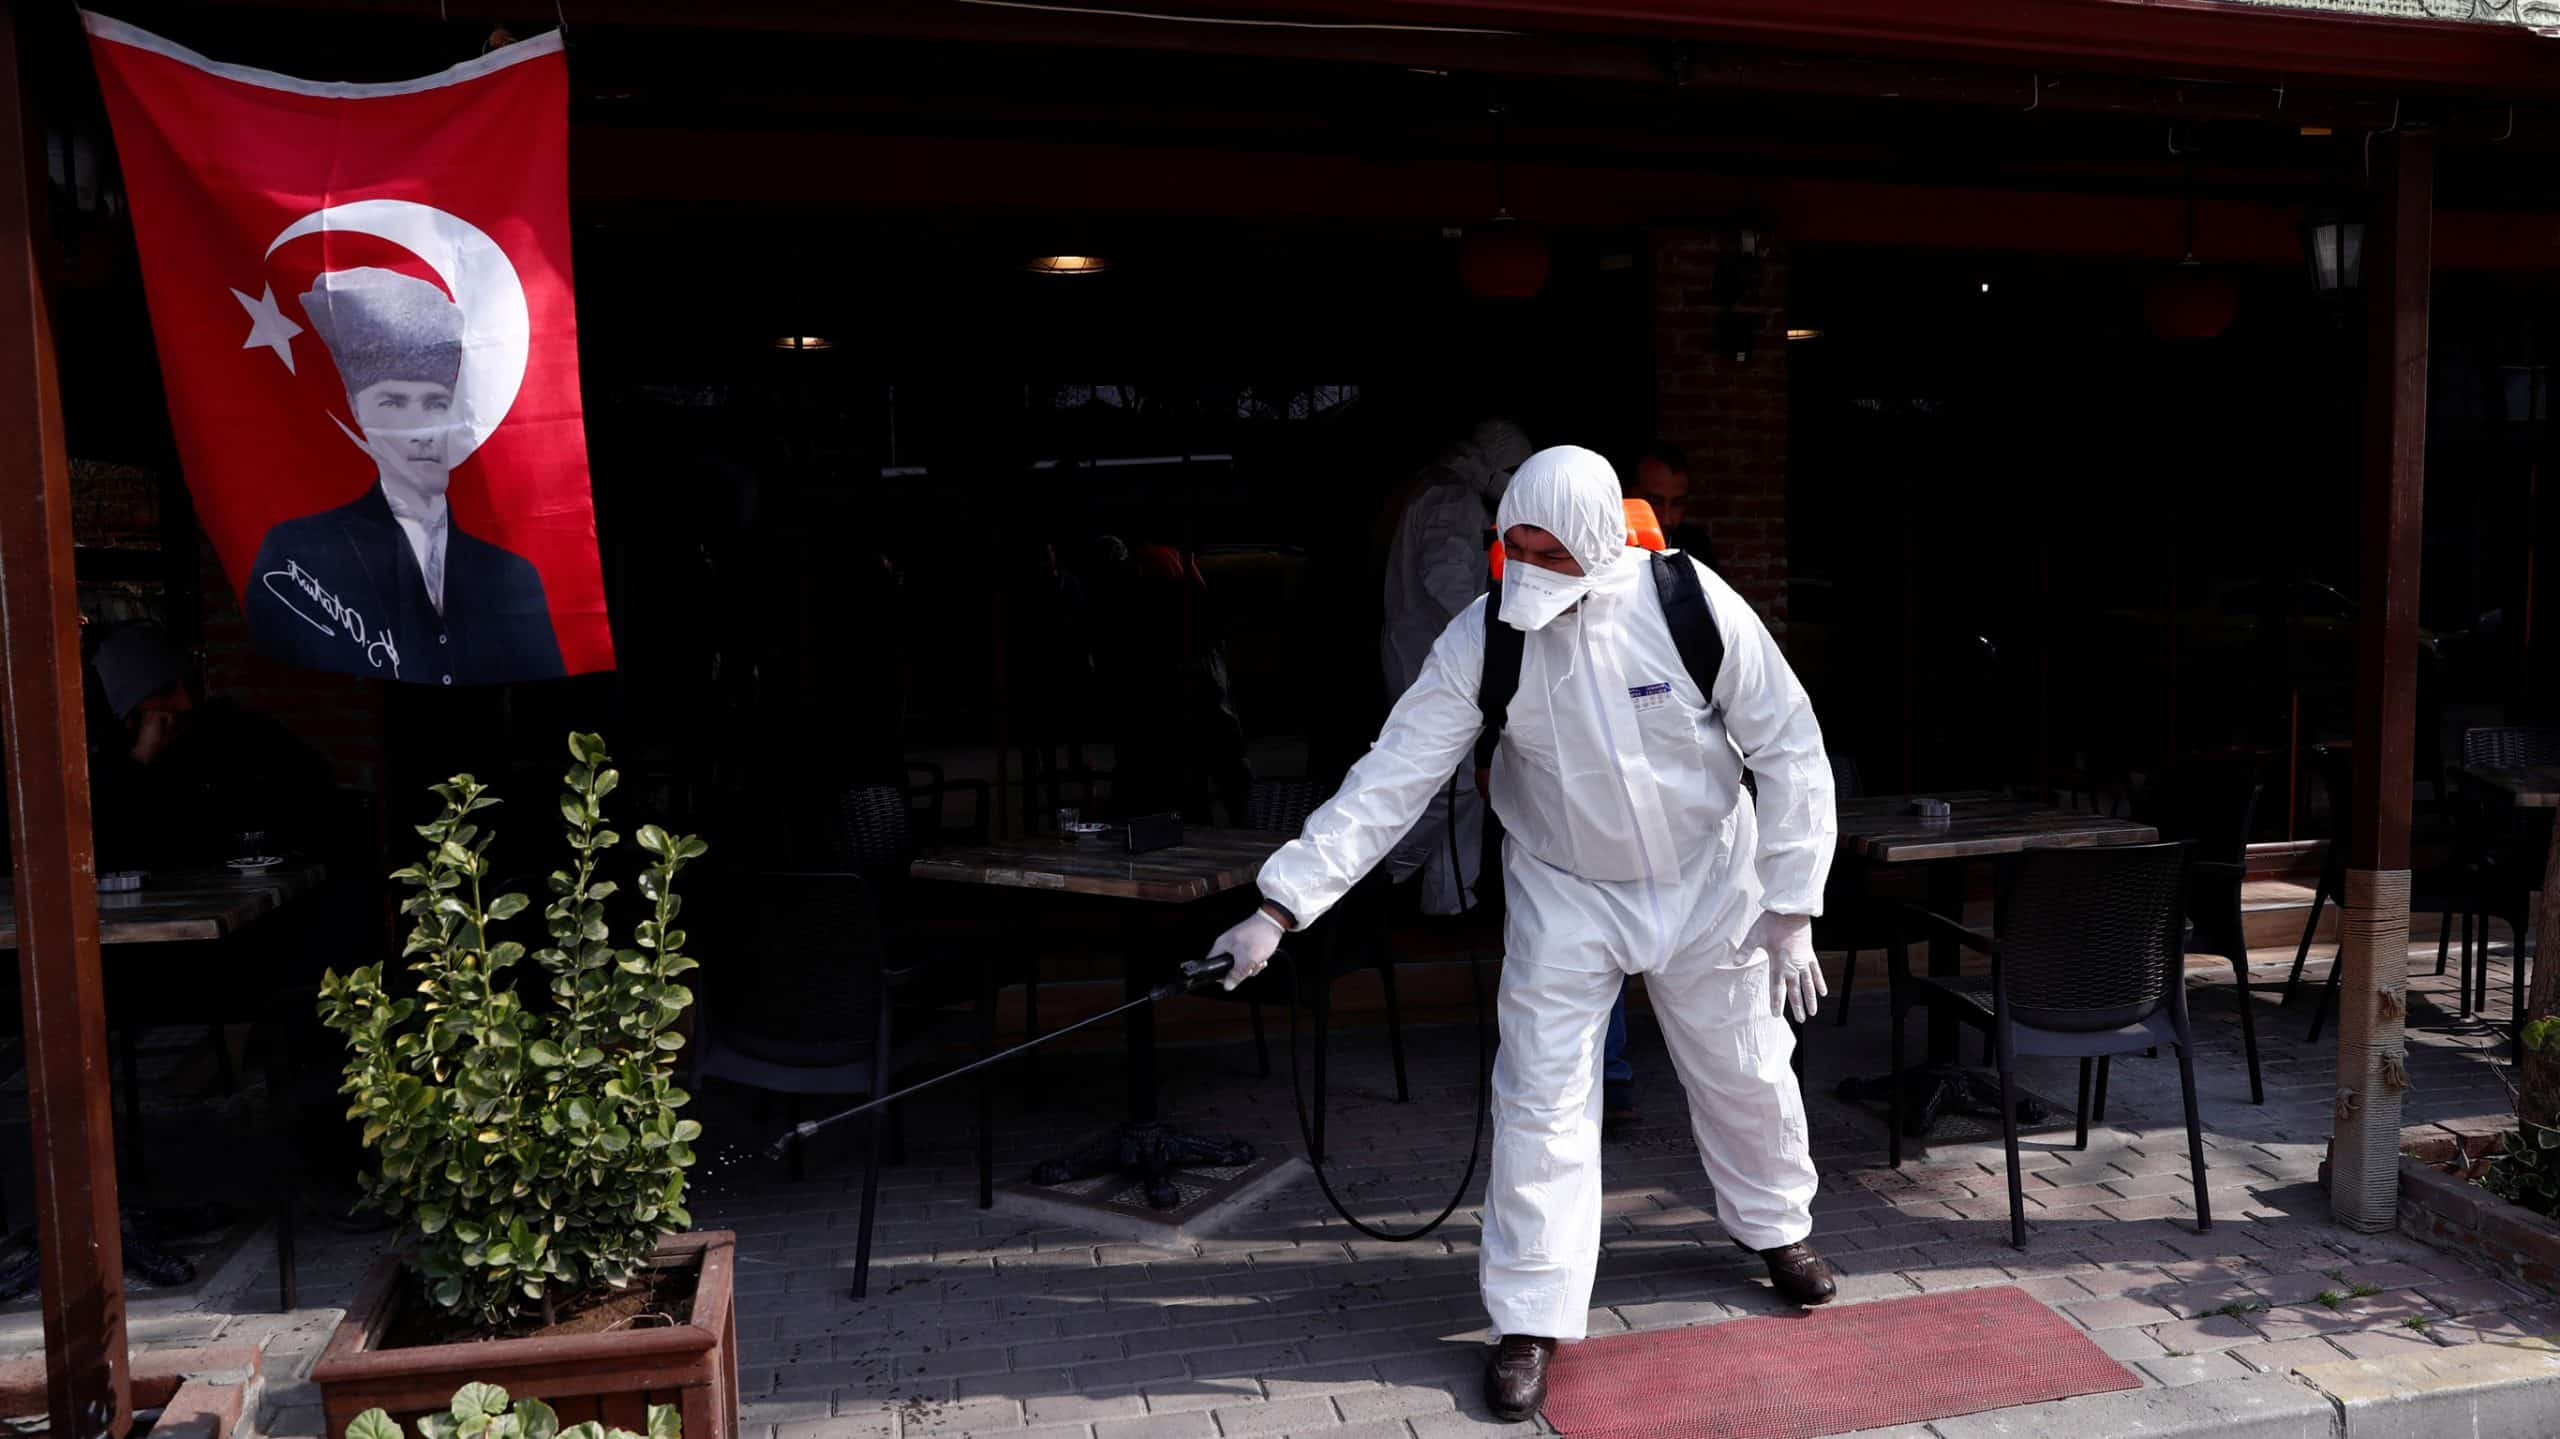 Pandemic Stresses Turkey's Economy as Case Count Surpasses That of Iran